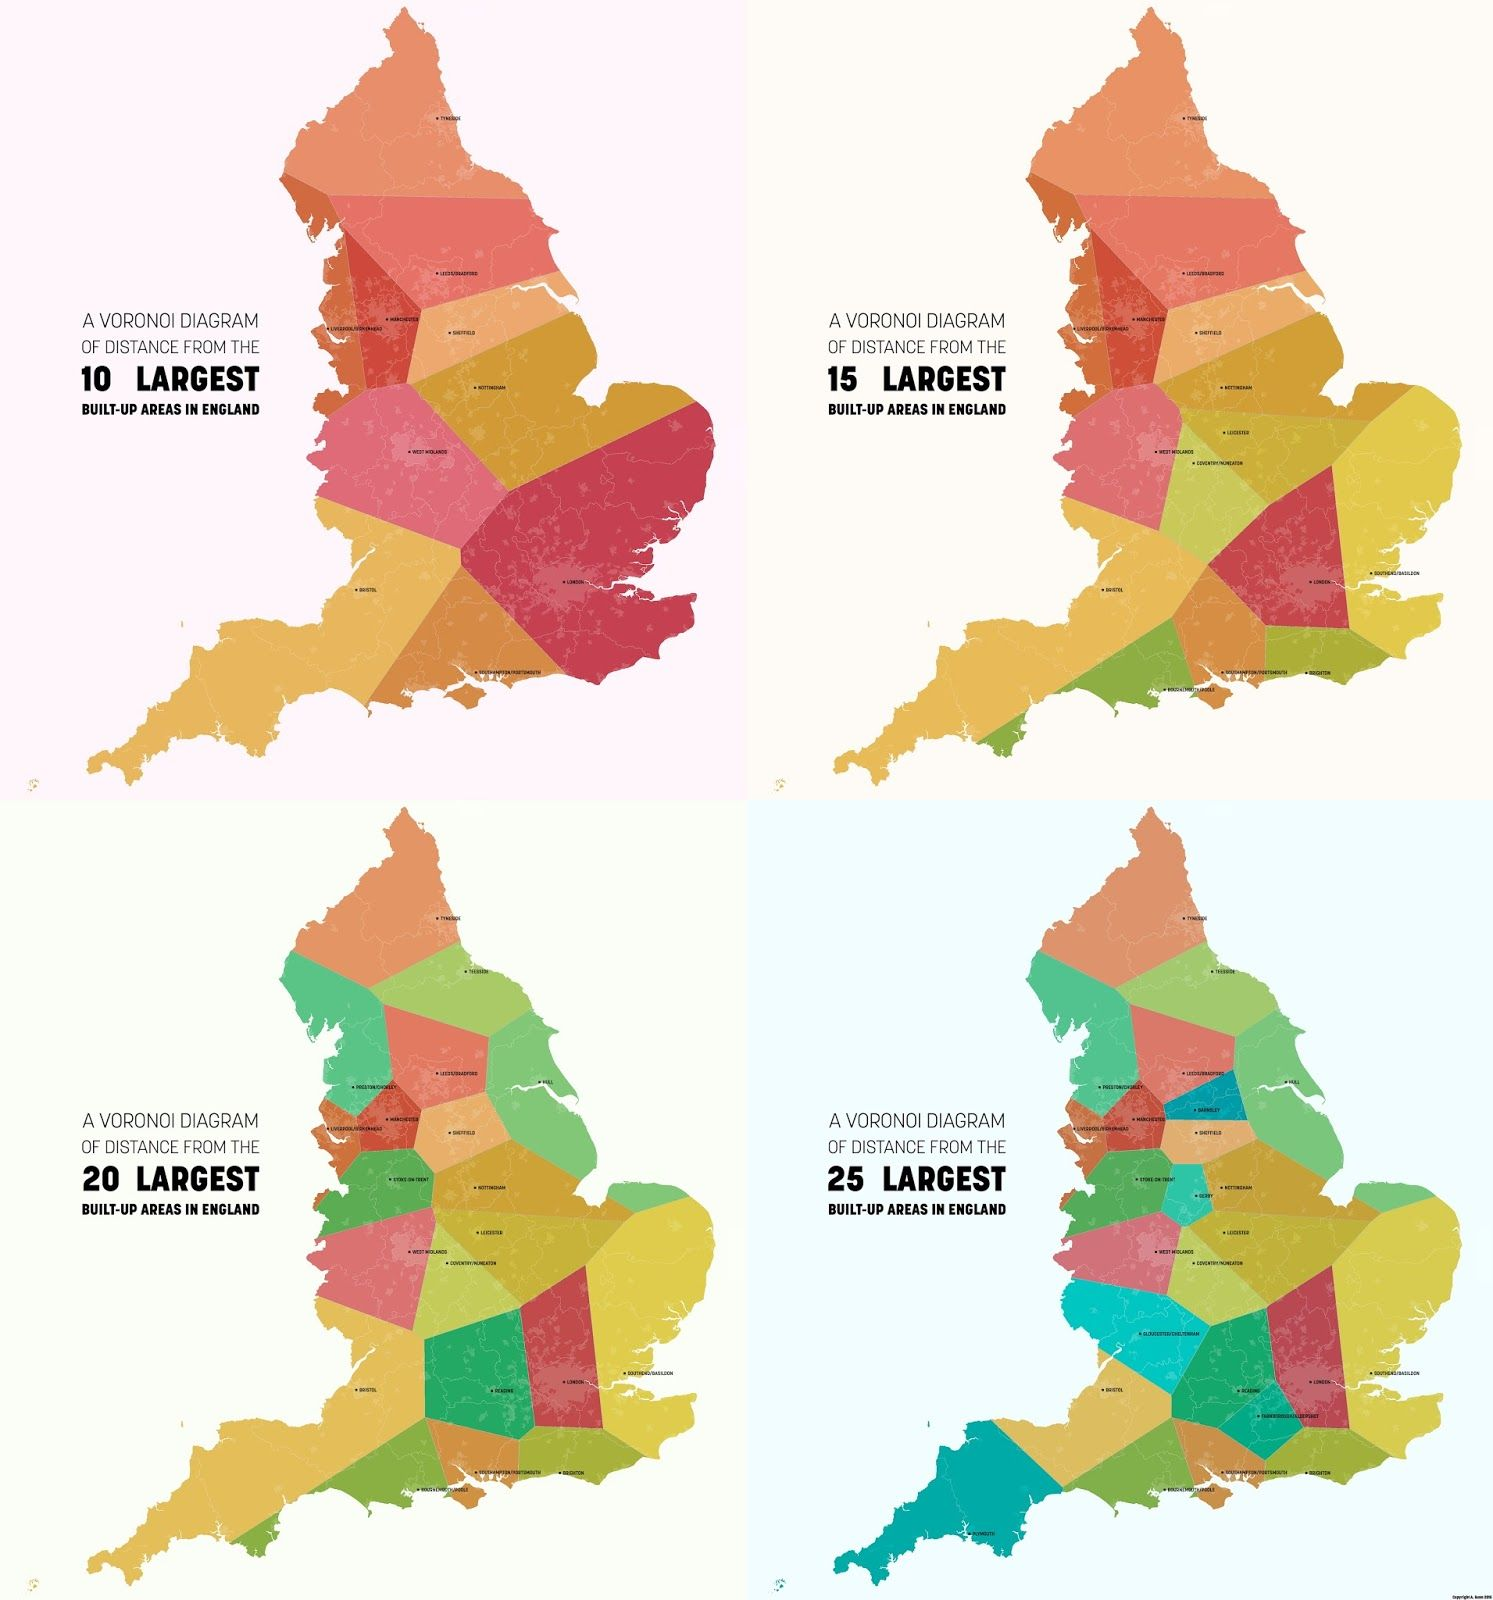 A Voronoi Diagram Of England Showing Distance From The Largest Built Up Areas